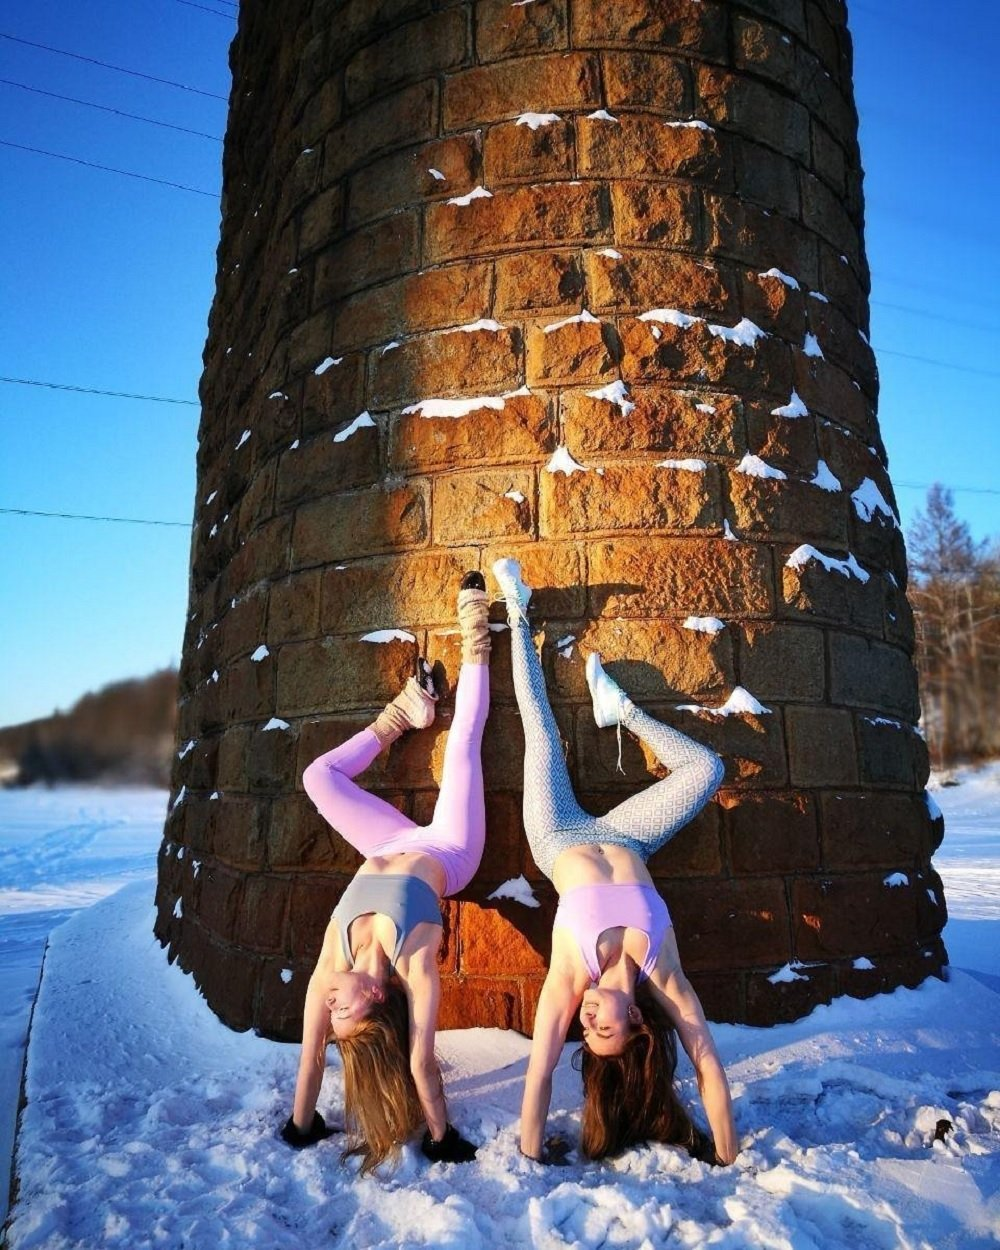 Two Siberian Girls Practice Yoga In -40 Degree Weather And Frost Photos - Sputnik -4131